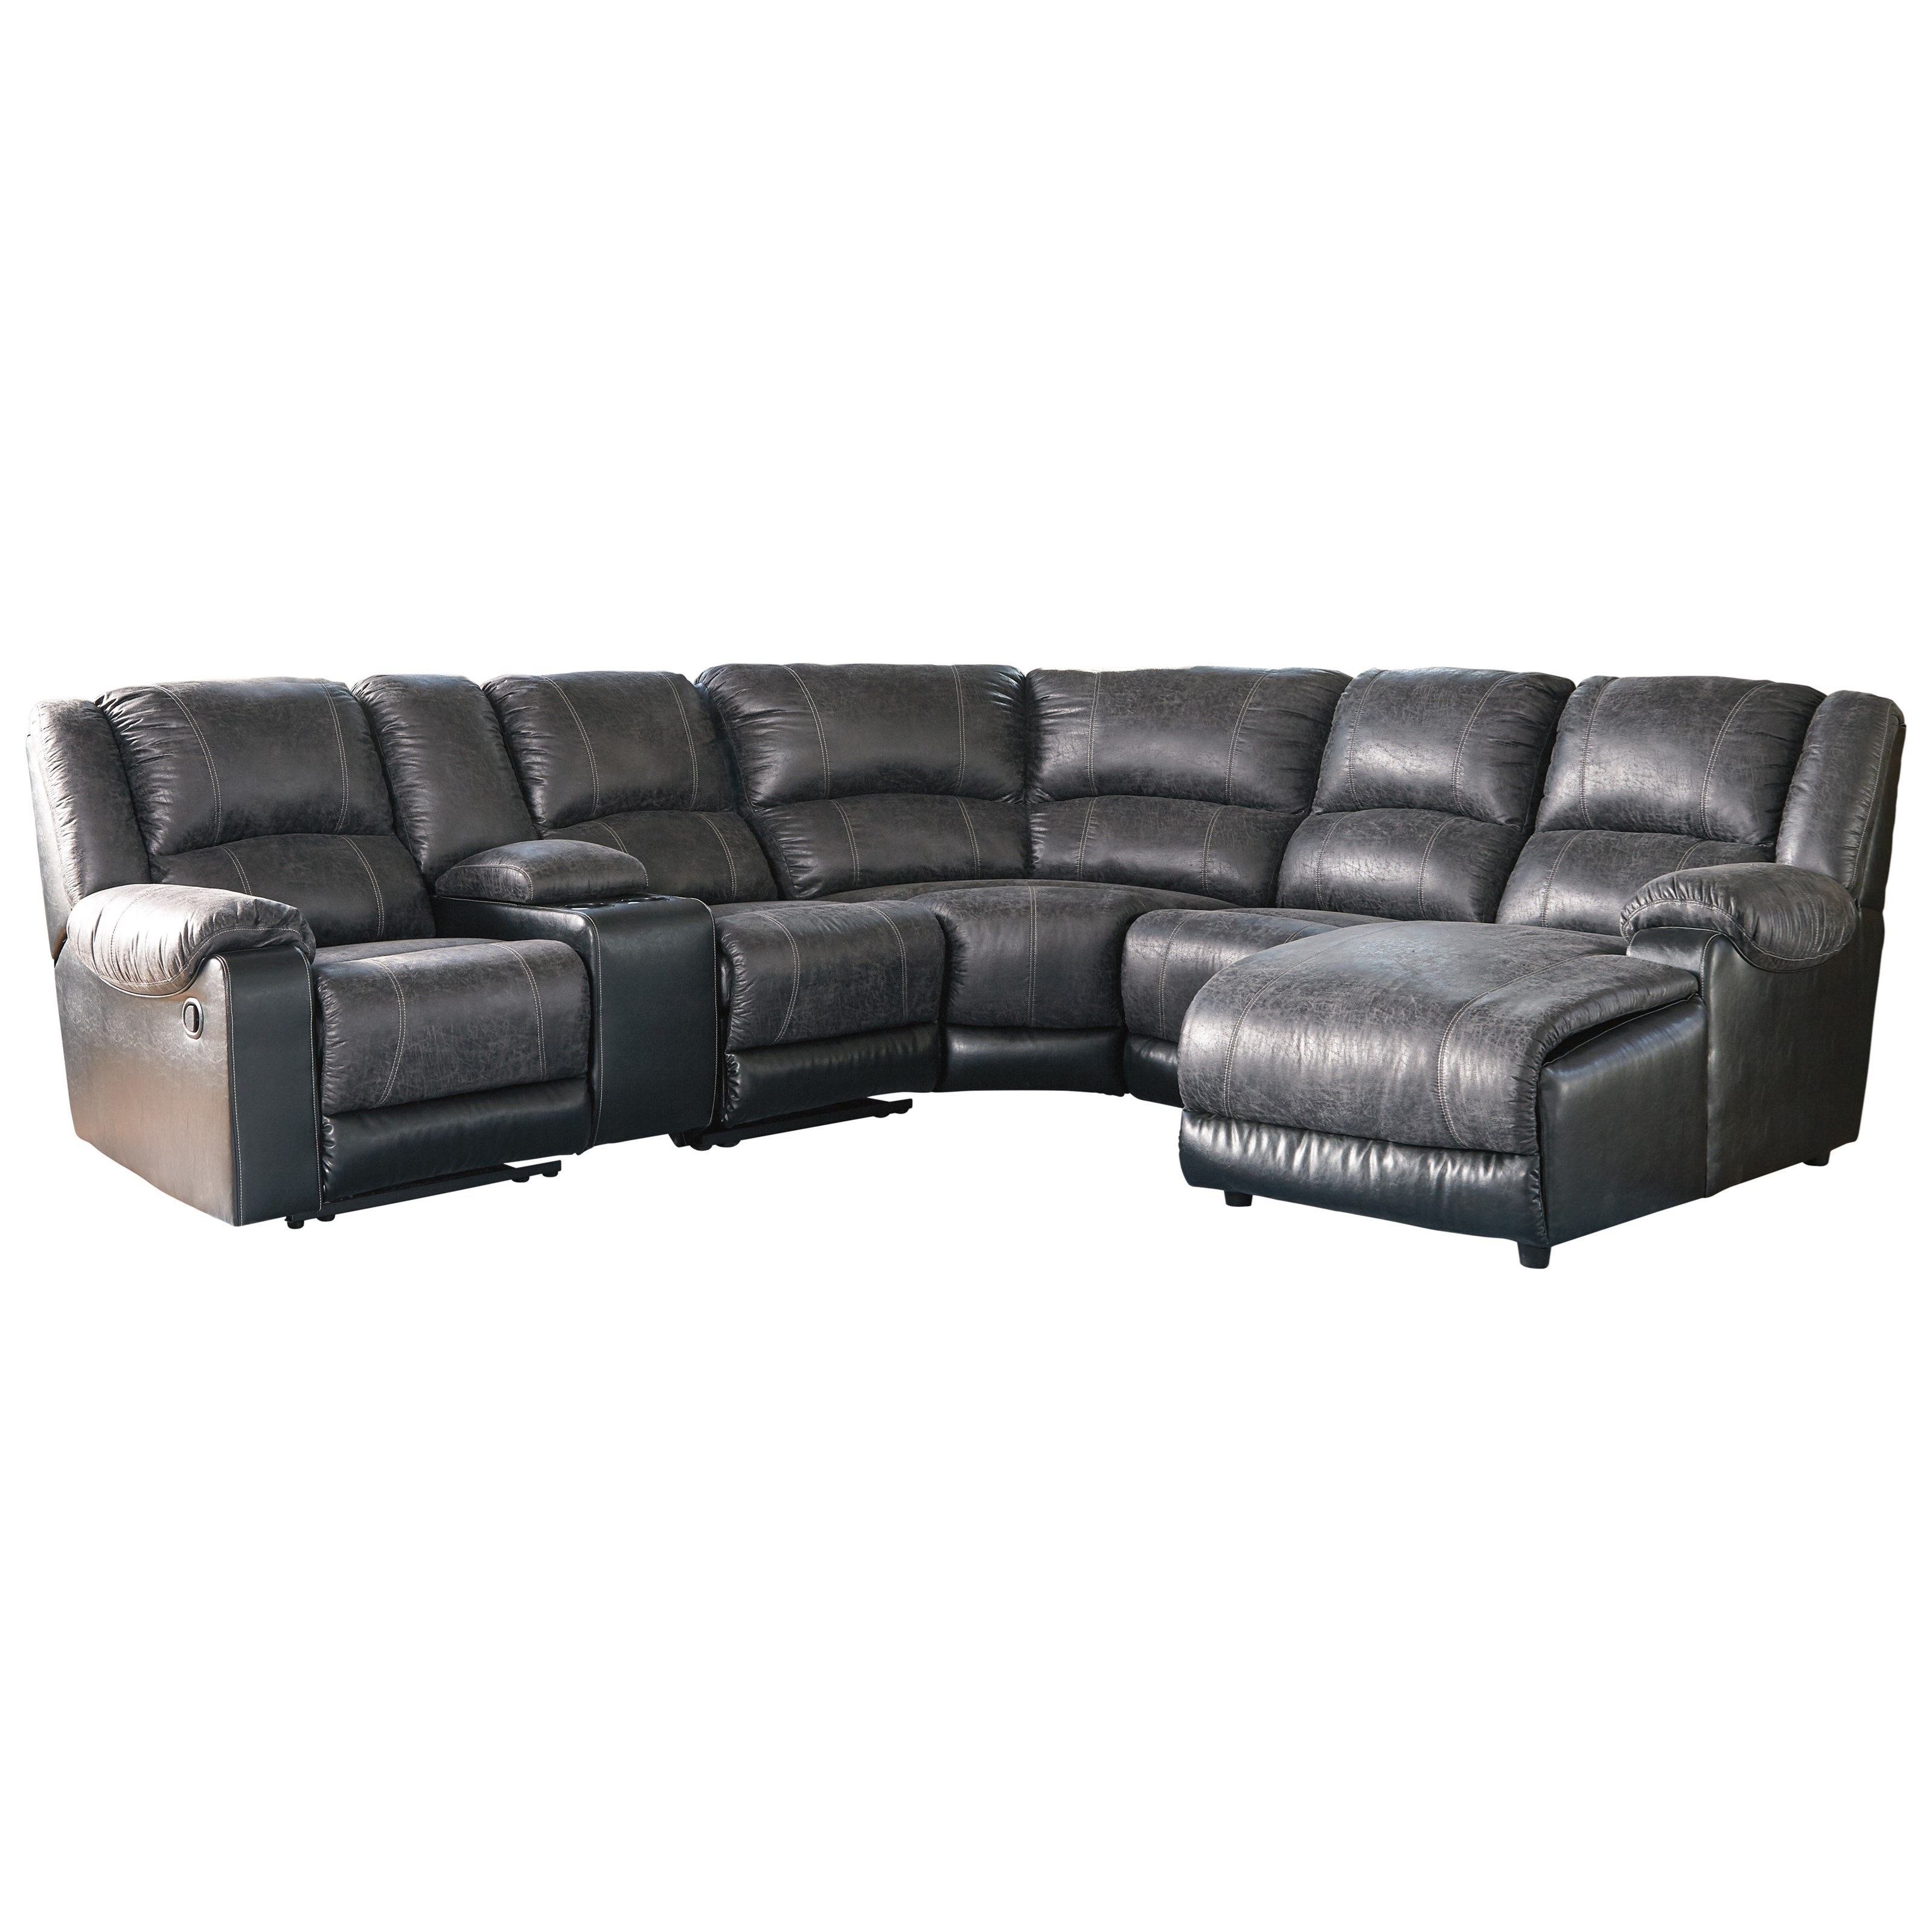 Signature design by ashley nantahala faux leather - Leather reclining sectional with chaise ...